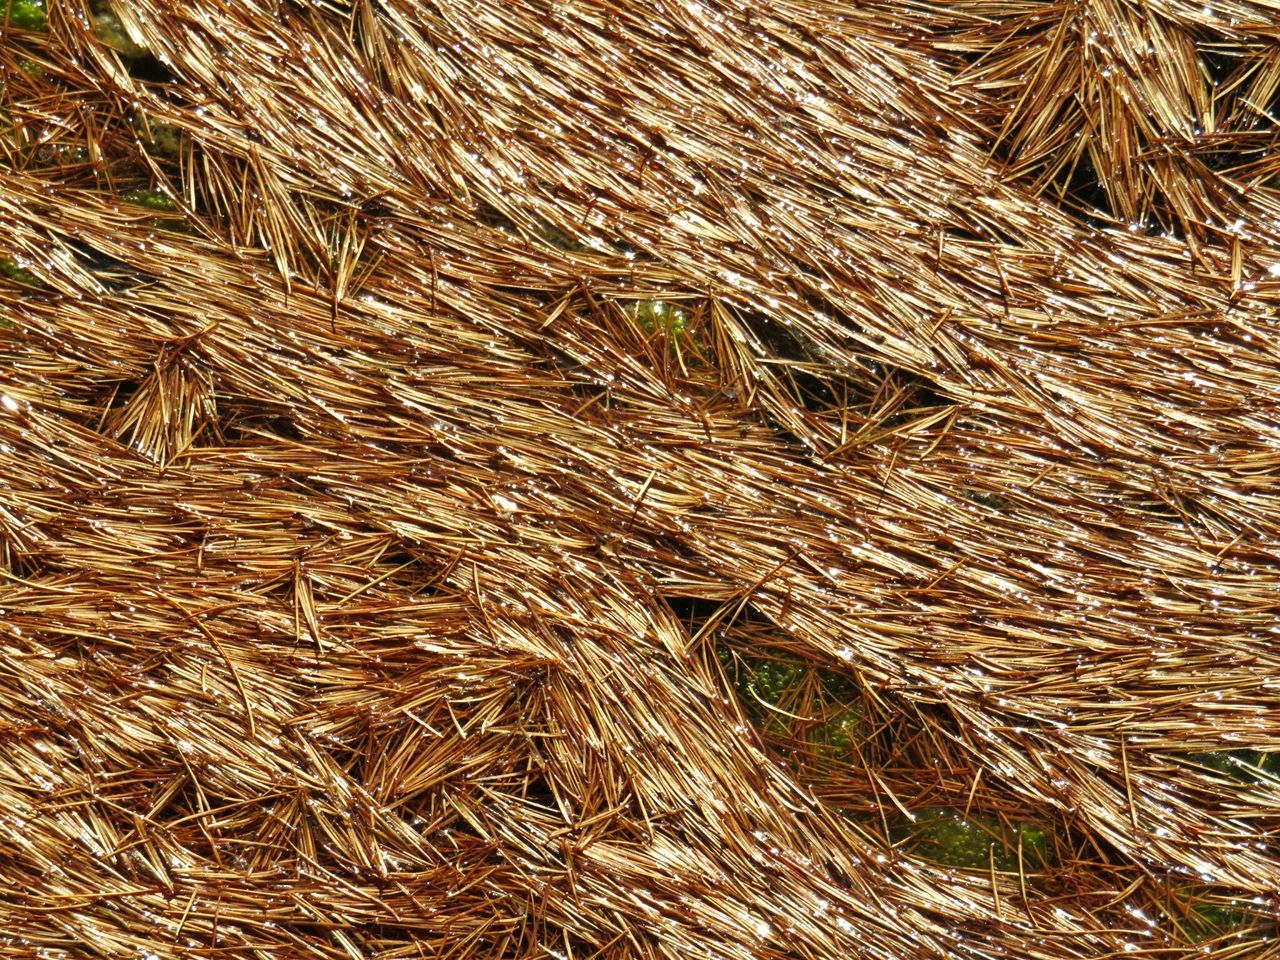 full frame, backgrounds, hay, agriculture, no people, straw, field, brown, day, outdoors, hay bale, nature, haystack, wheat, cereal plant, close-up